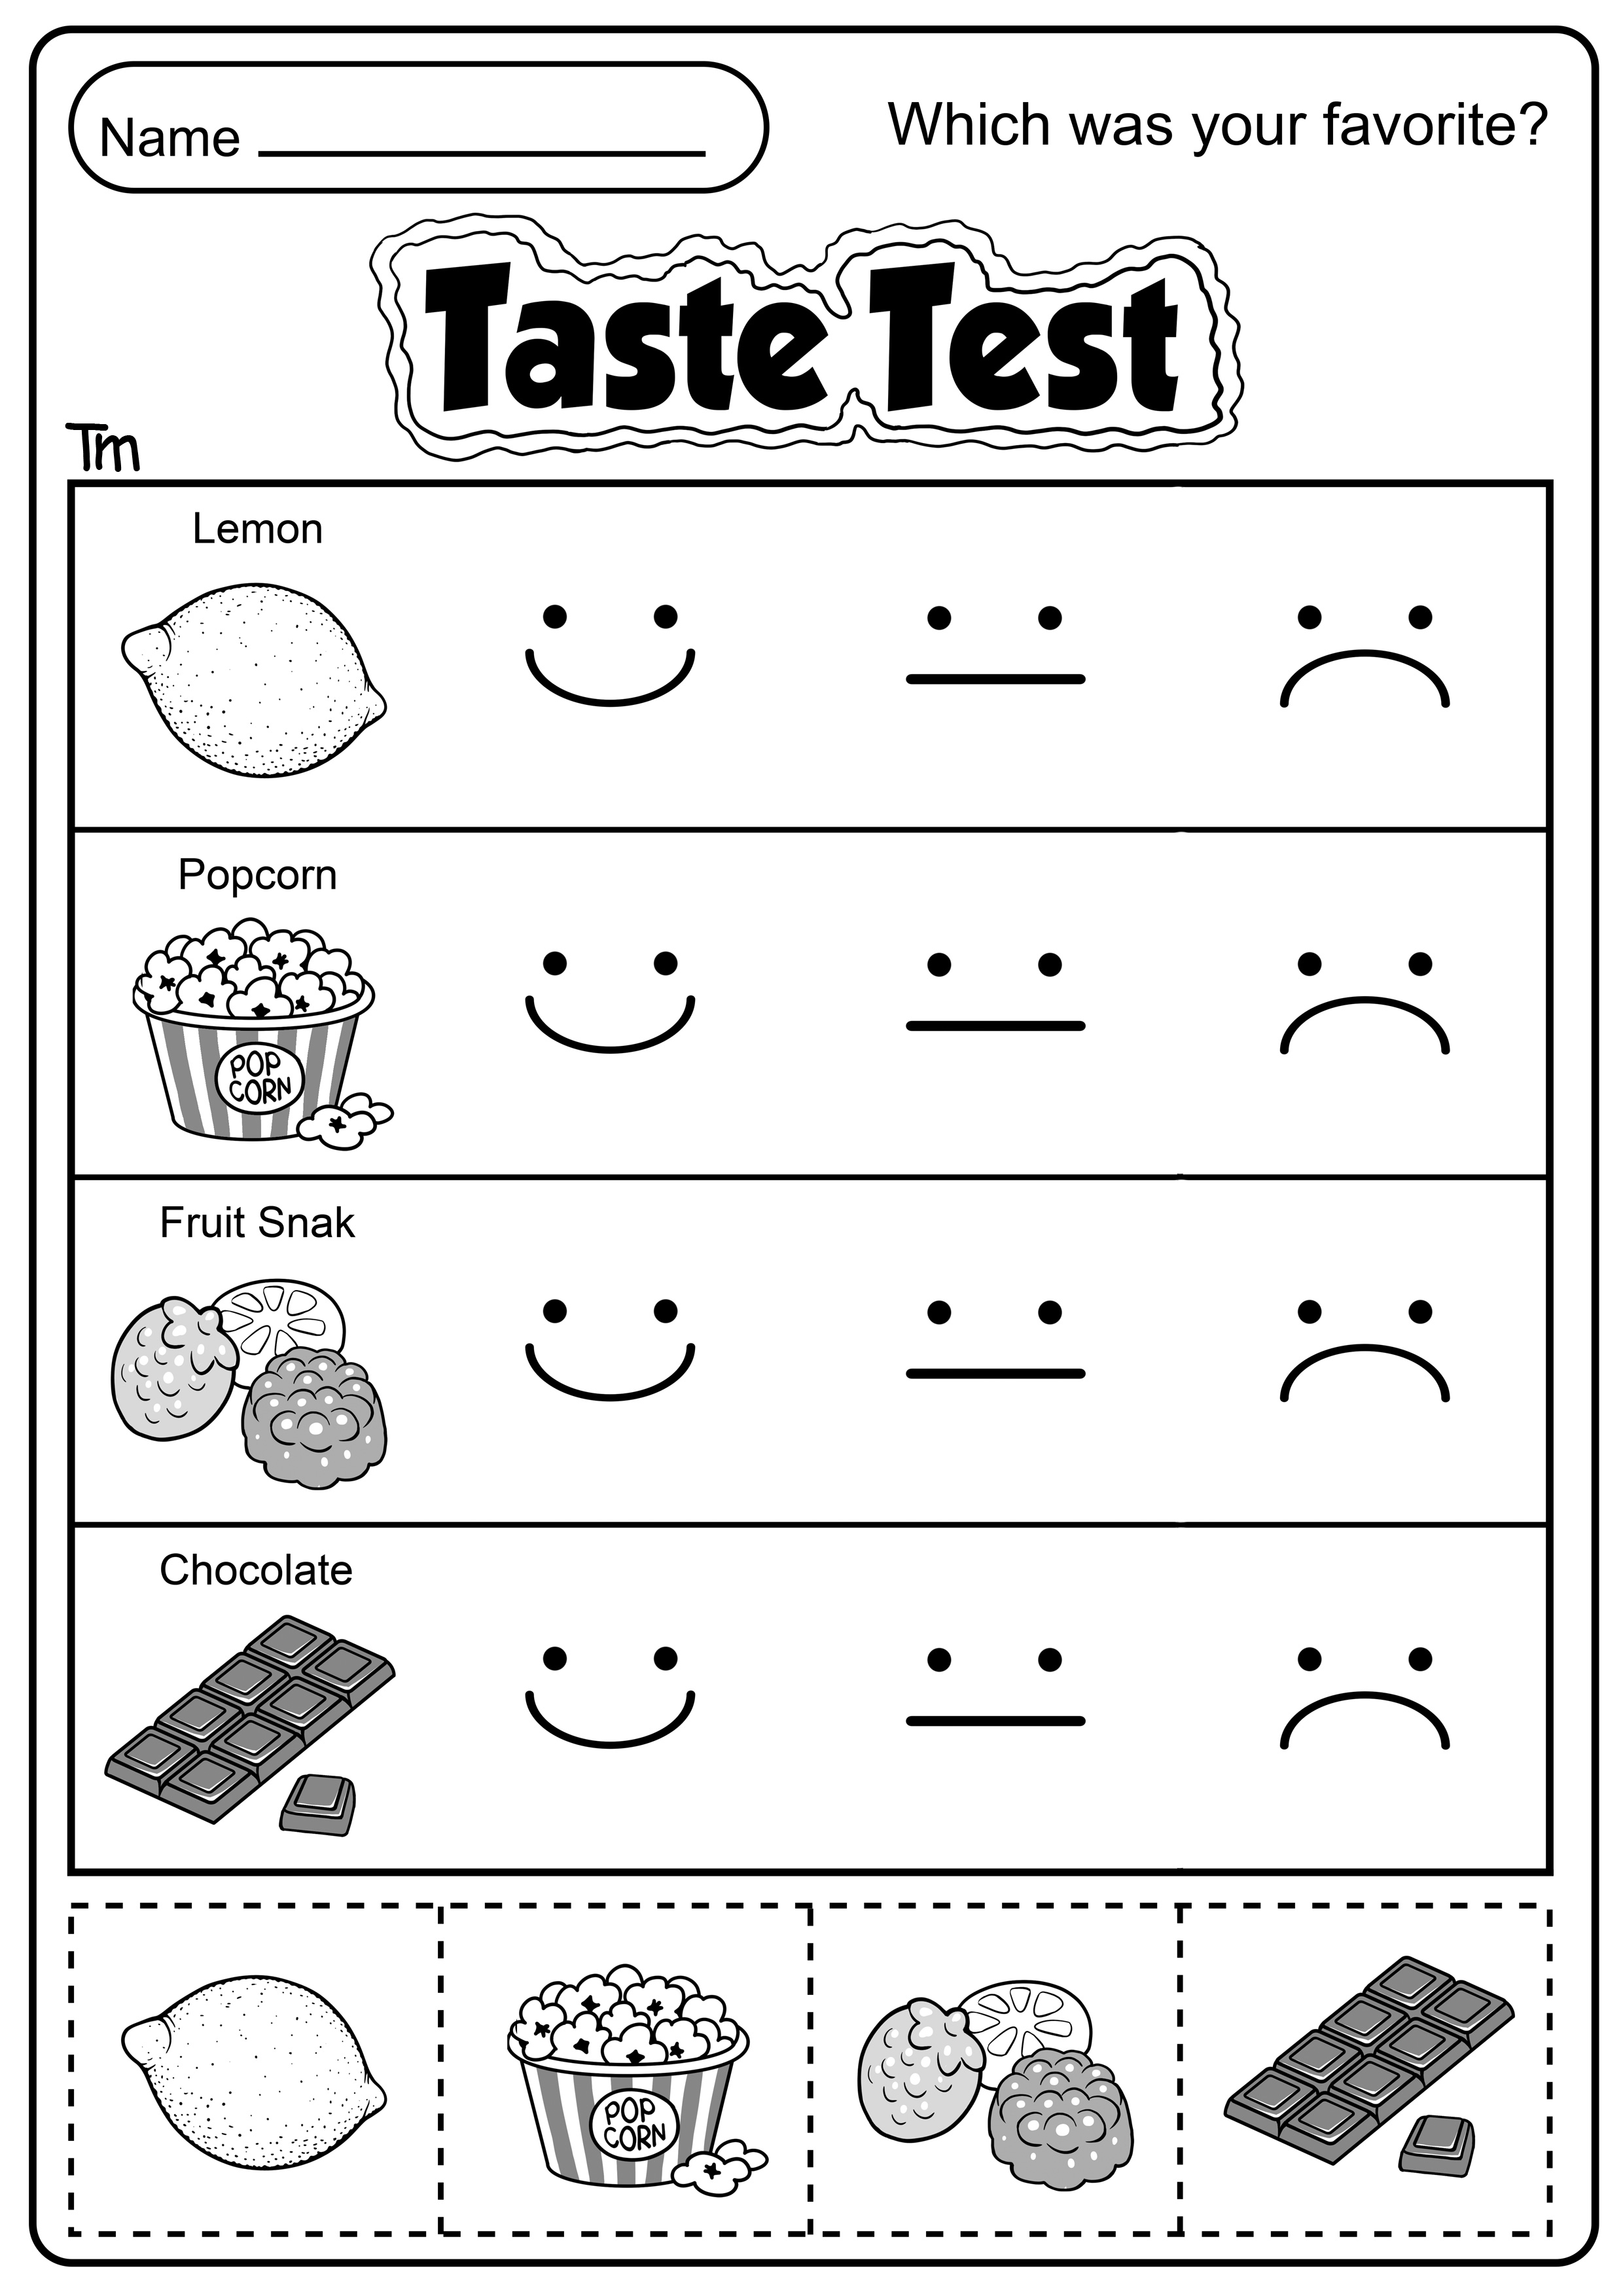 The Five Senses Taste Test